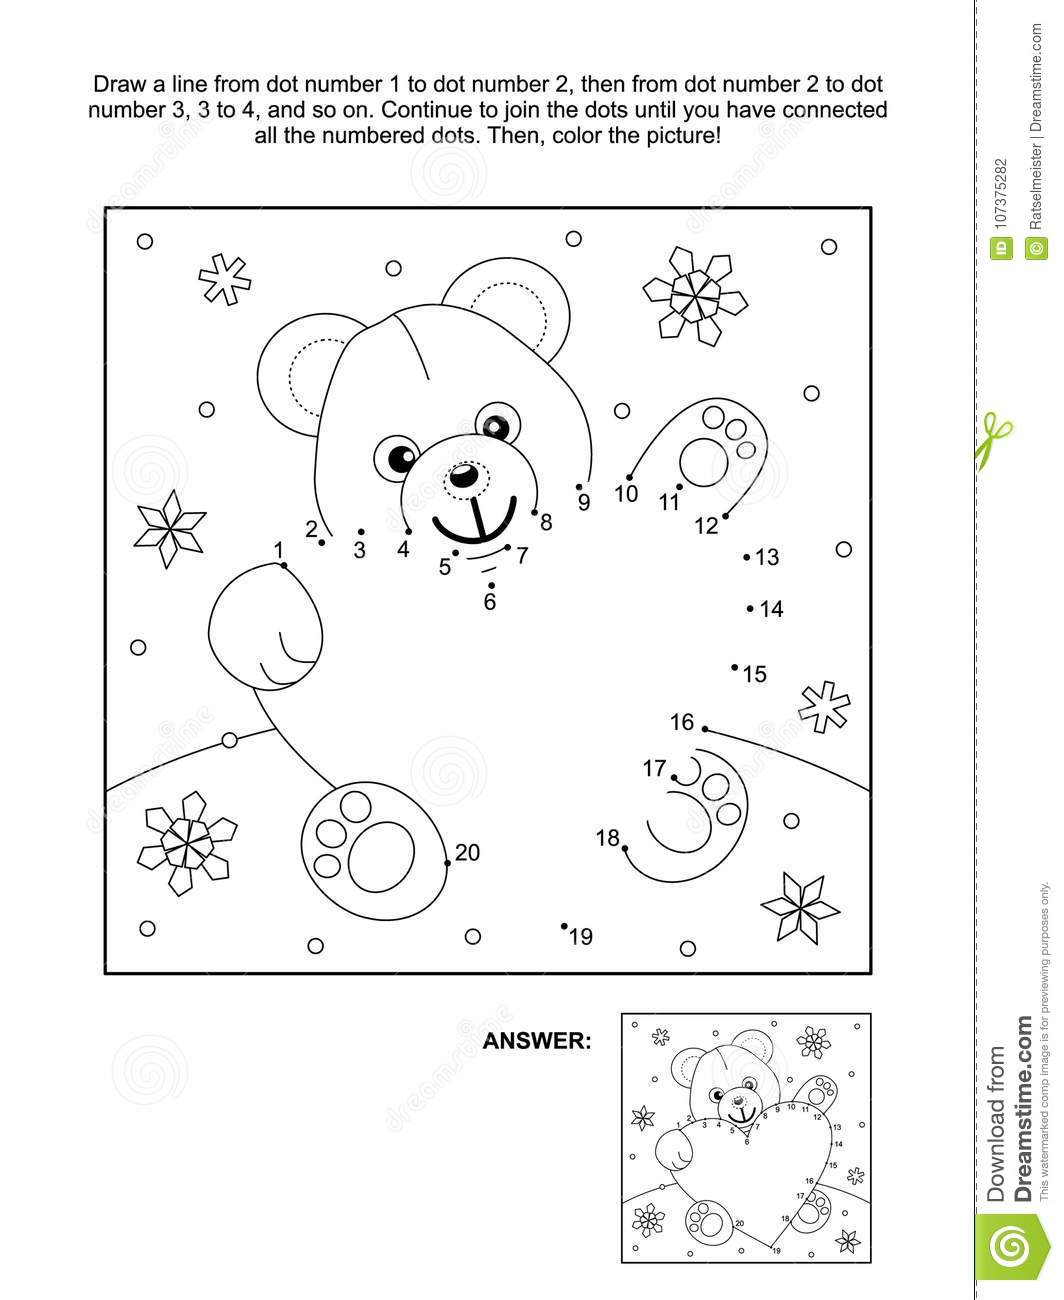 Valentine S Day Dot To Dot And Coloring Page With Teddy Bear And Heart Stock Vector